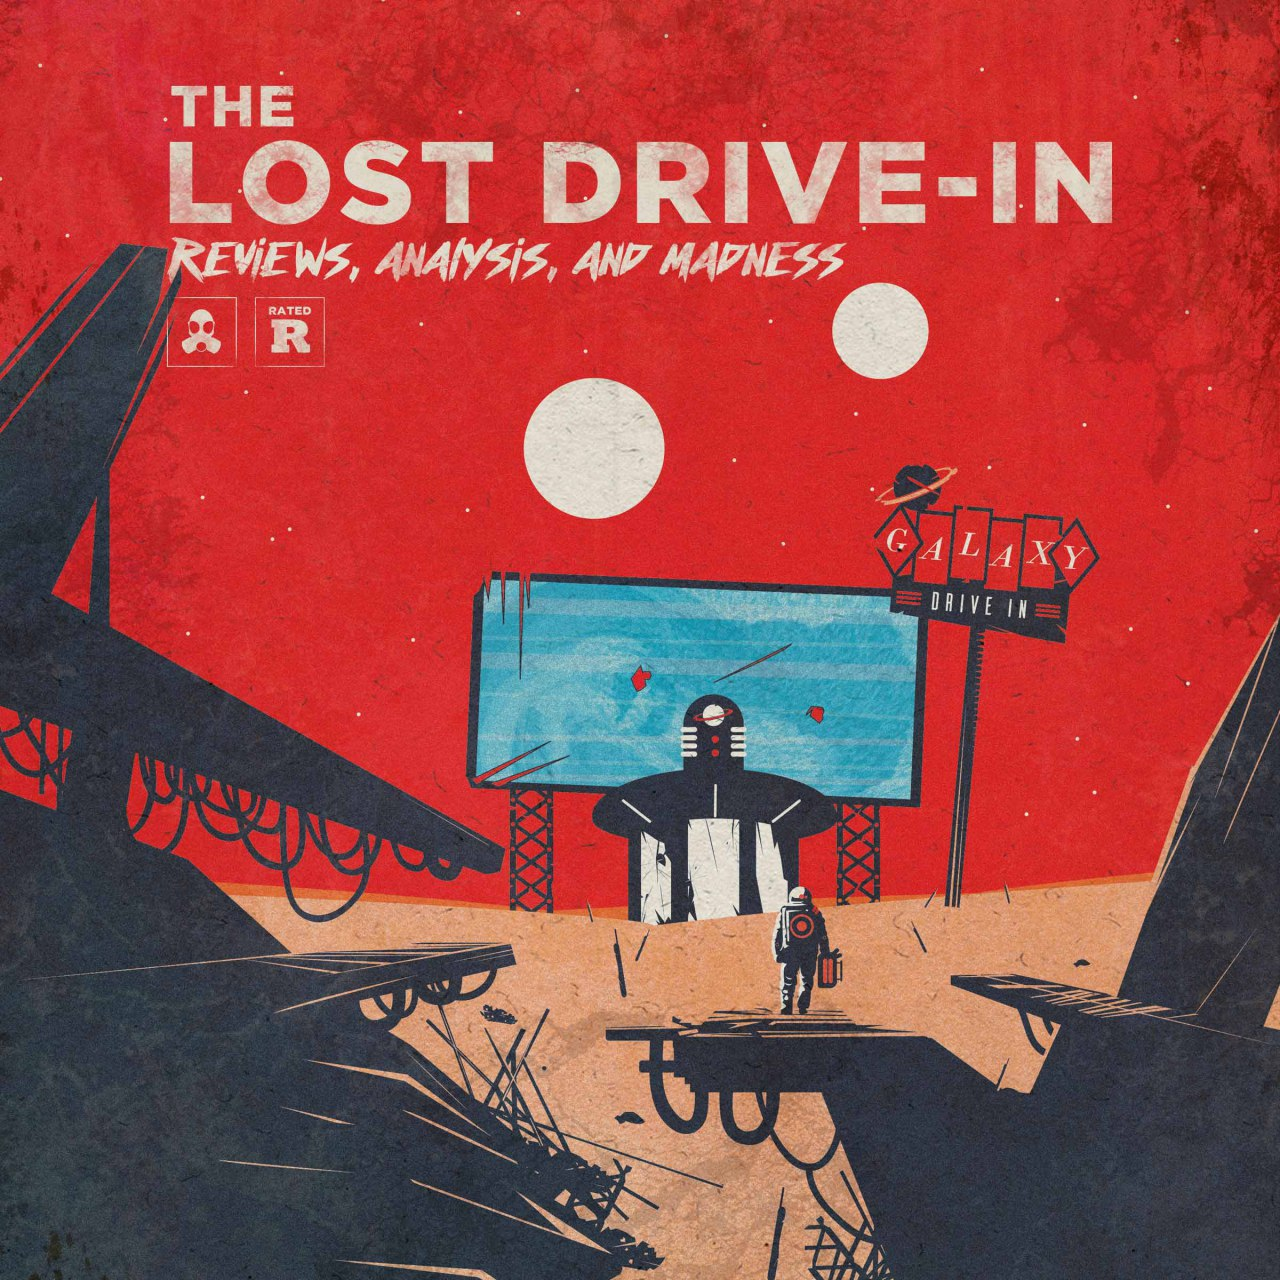 The Lost Drive-In show art